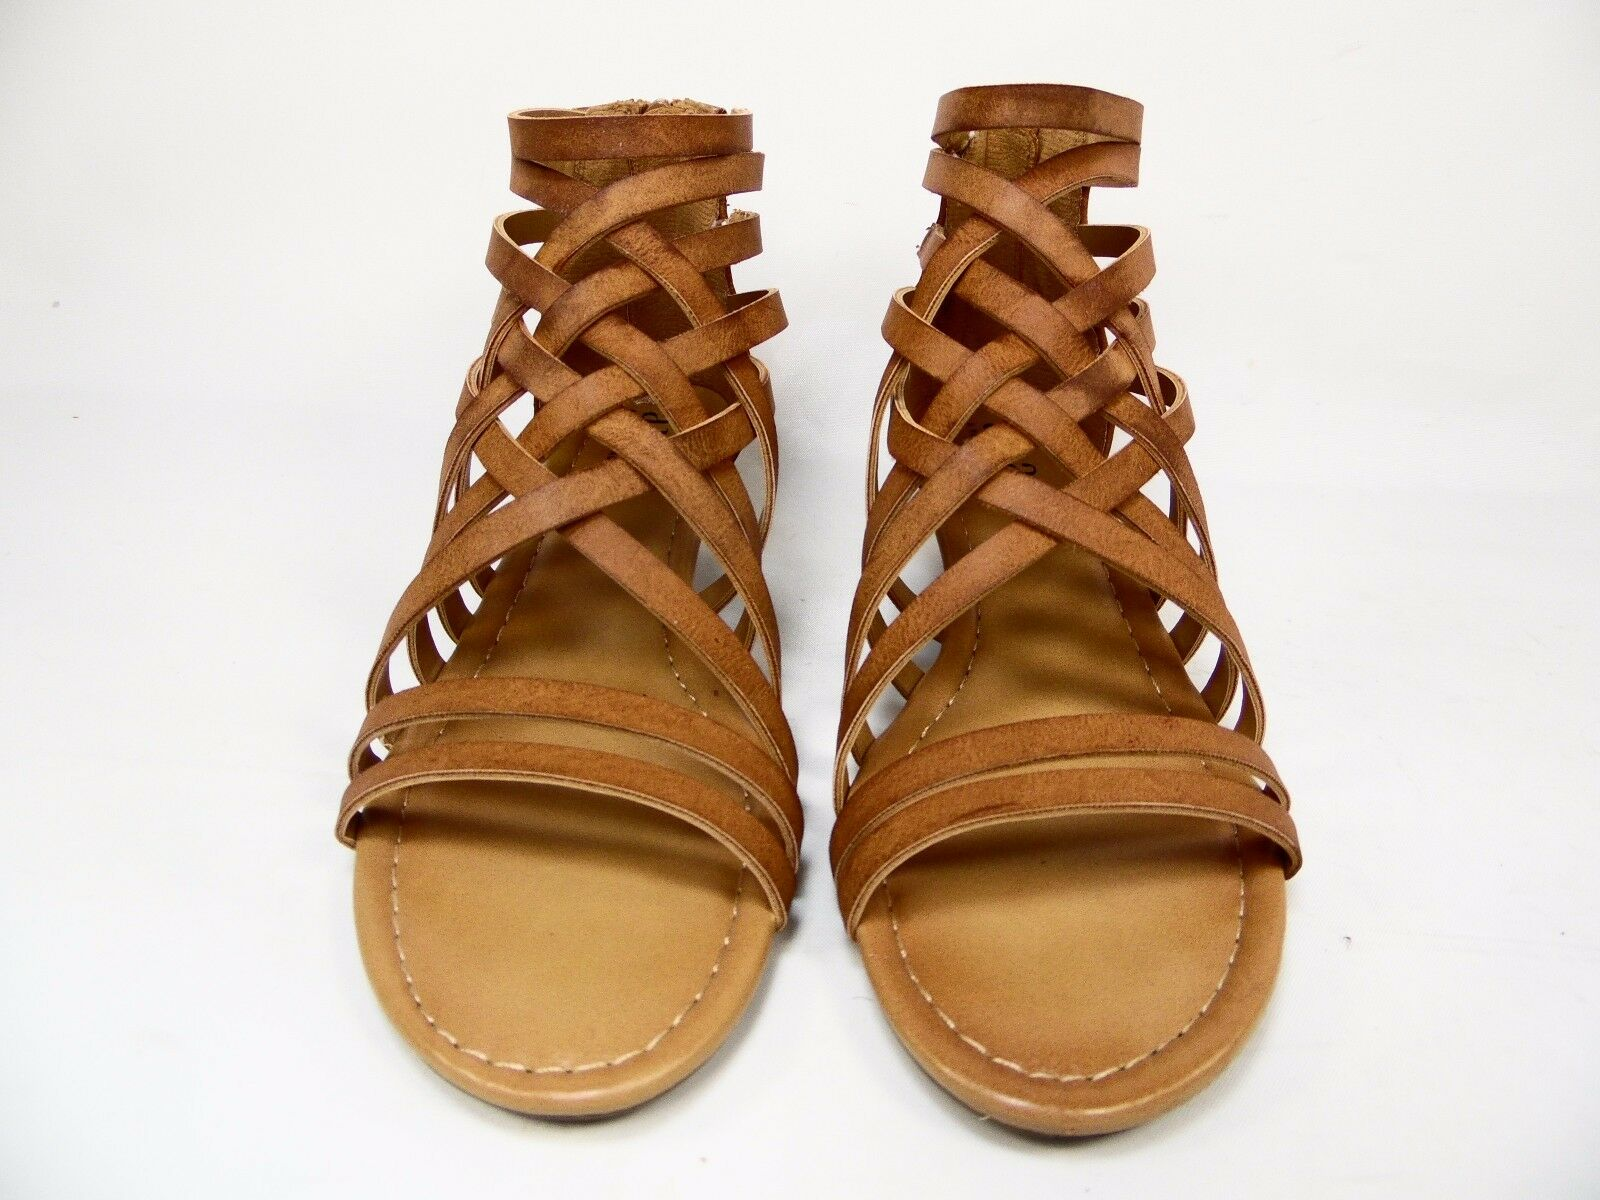 A.n.a Gilly Womens Wedge Sandals Cognac Size 6M